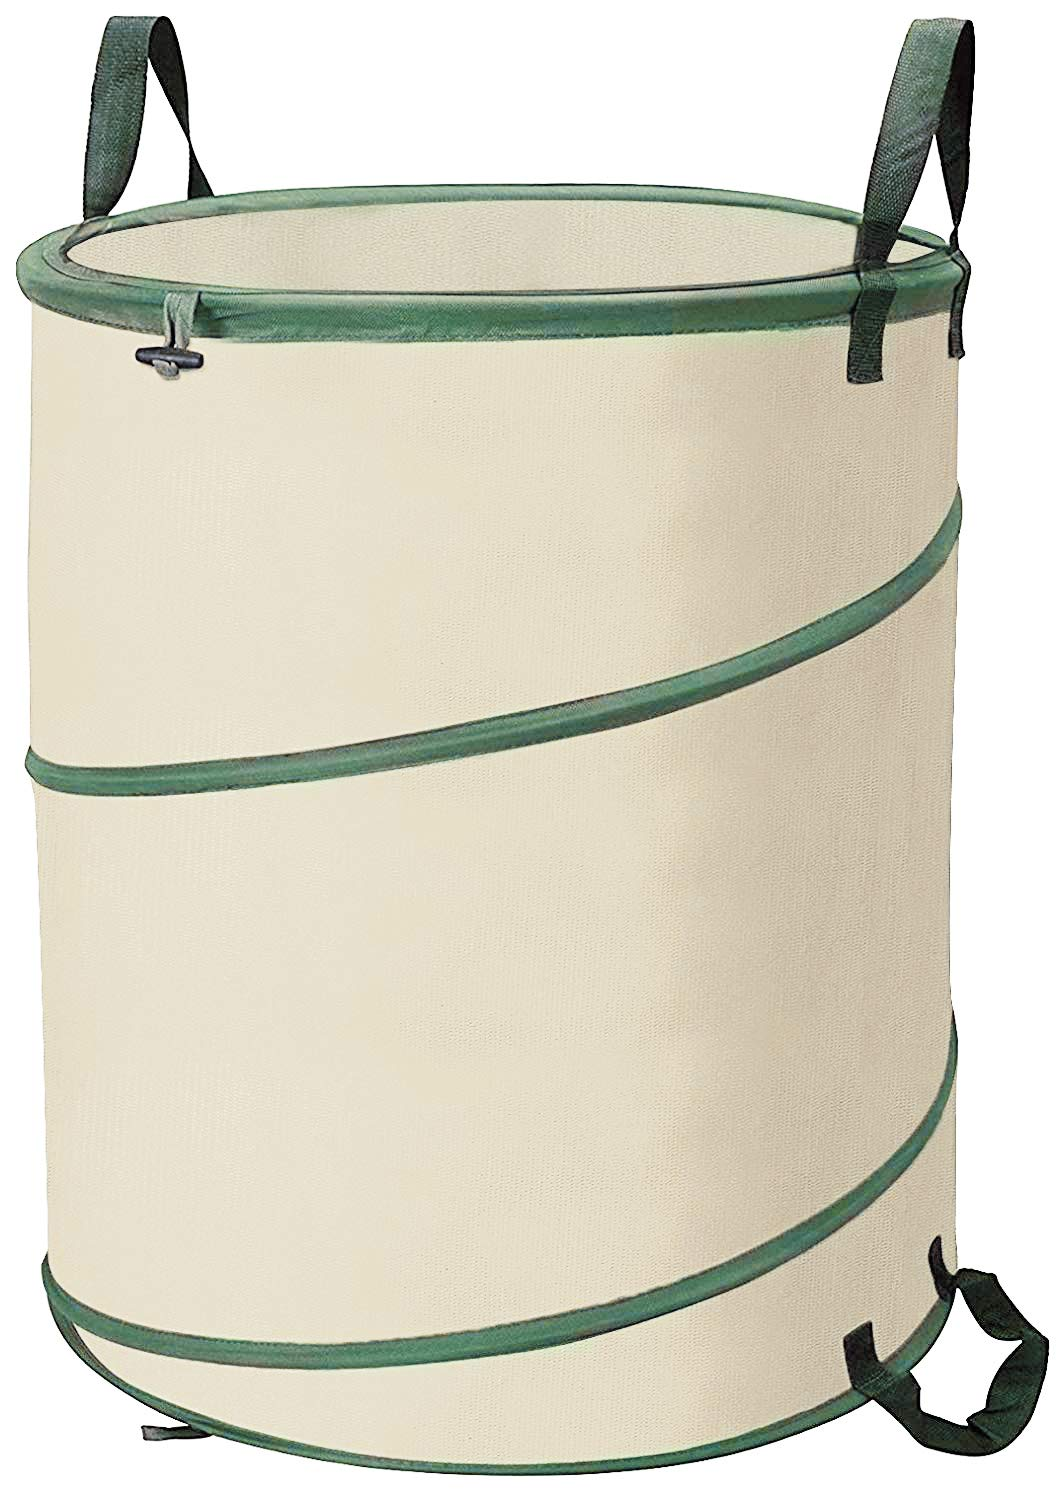 Toys Studio Garden Bag 30 Gallon Pop-Up Collapsible Garden Waste Bag Reusable Gardening Waste Bag Portable Trash Can with Drawstring Top for Leaf, Lawn and Yard Waste